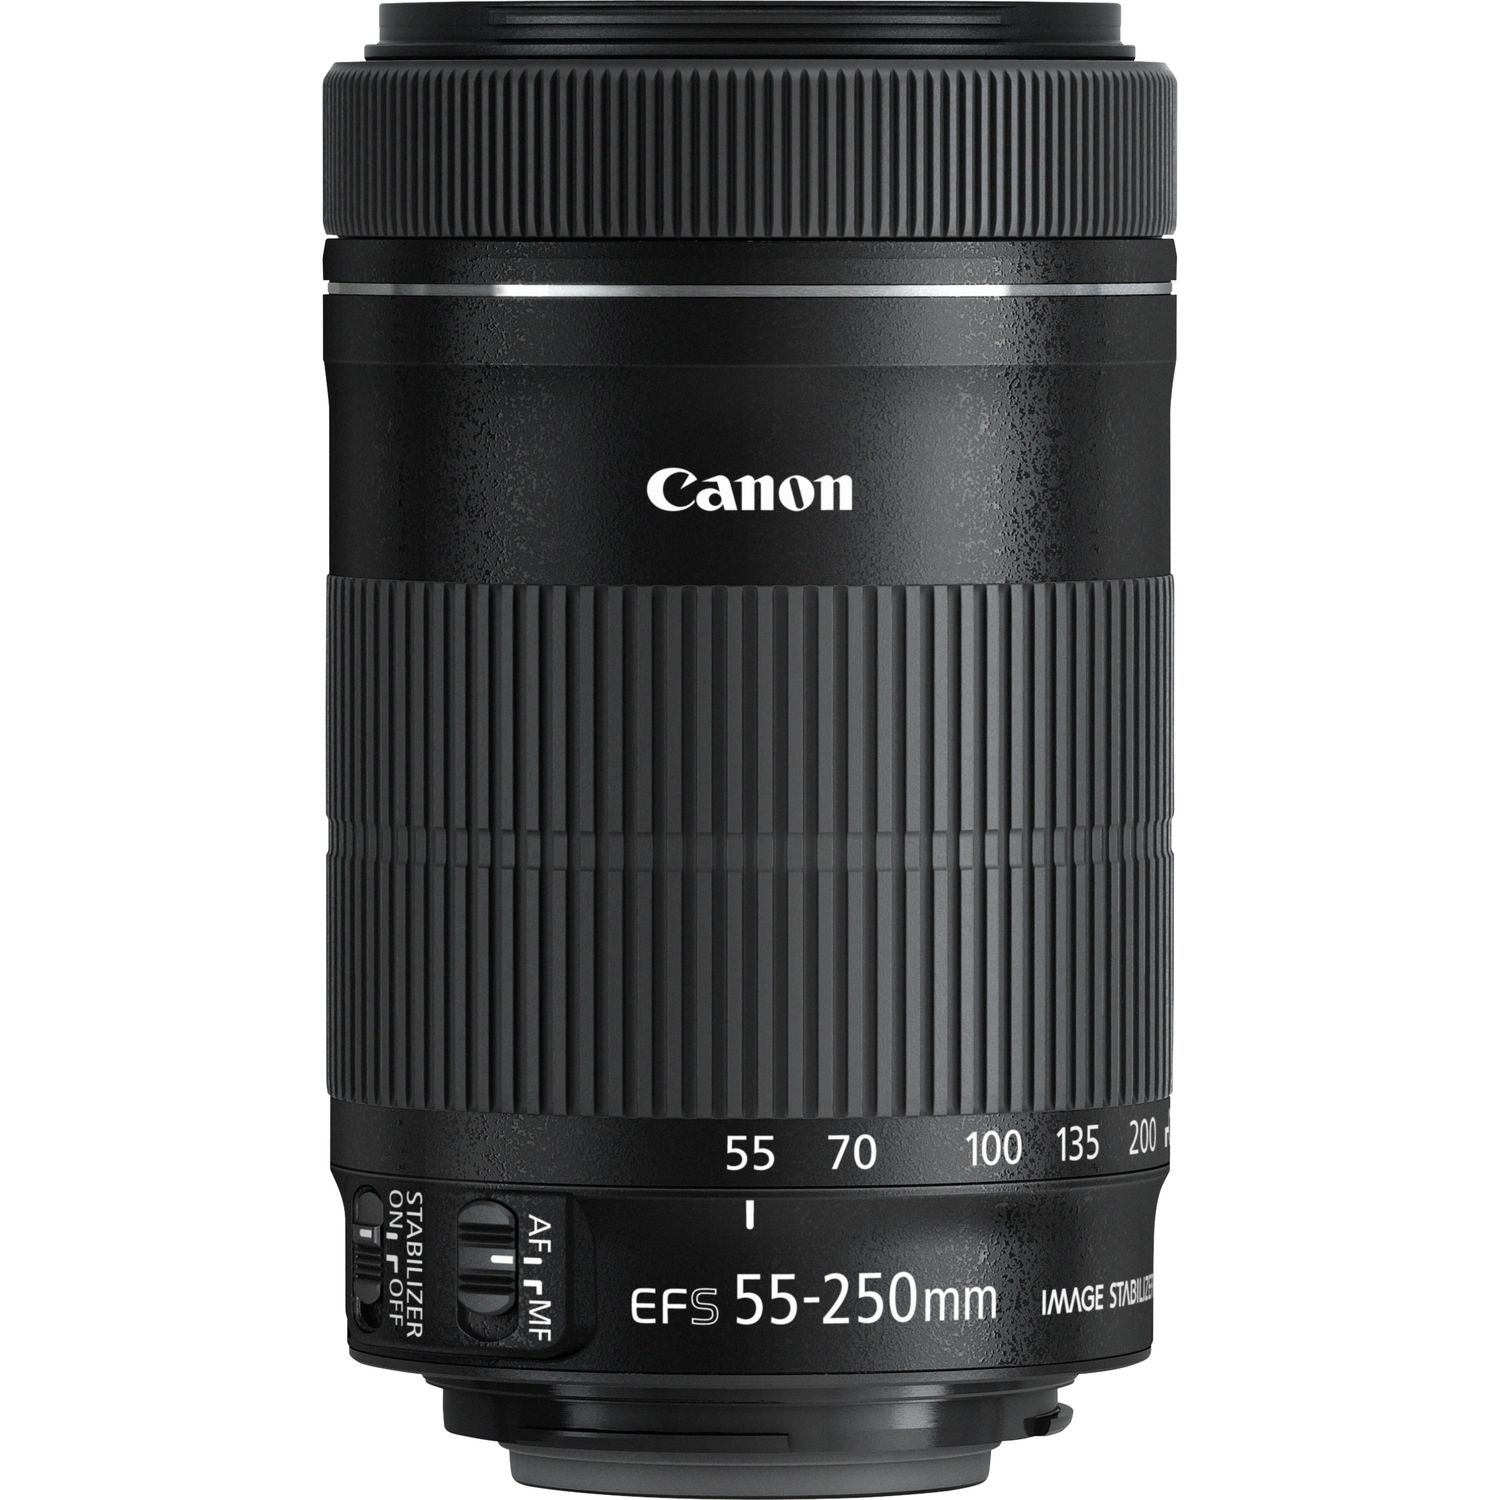 objectif canon ef s 55 250mm f 4 5 6 is stm canon belgium store. Black Bedroom Furniture Sets. Home Design Ideas